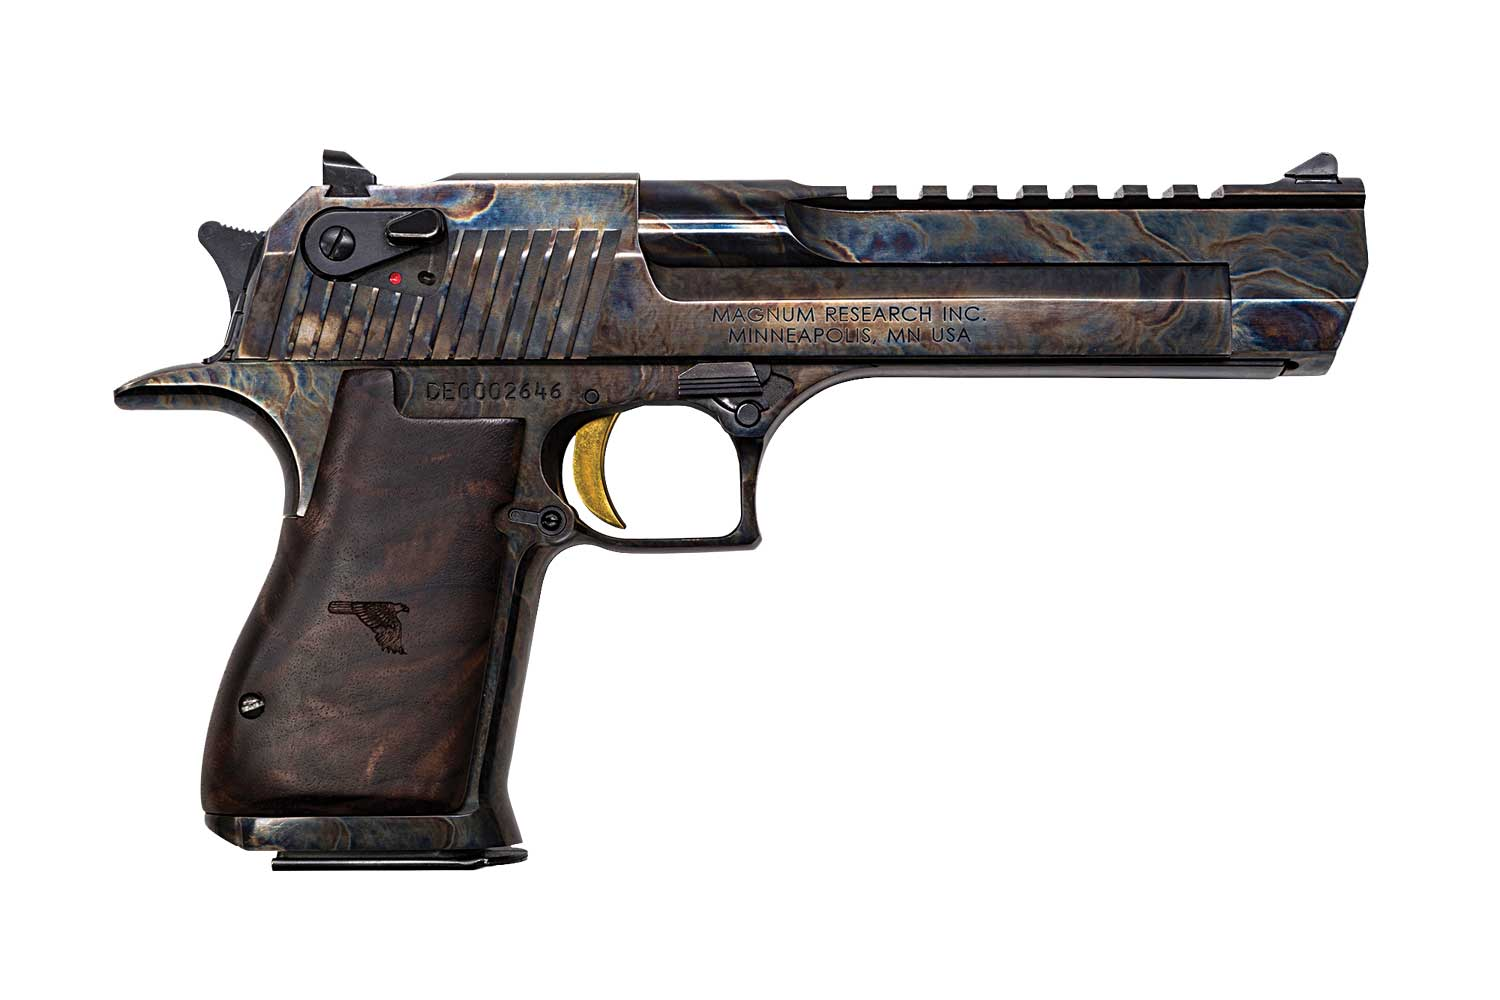 Desert Eagle pistol with case-hardened finish